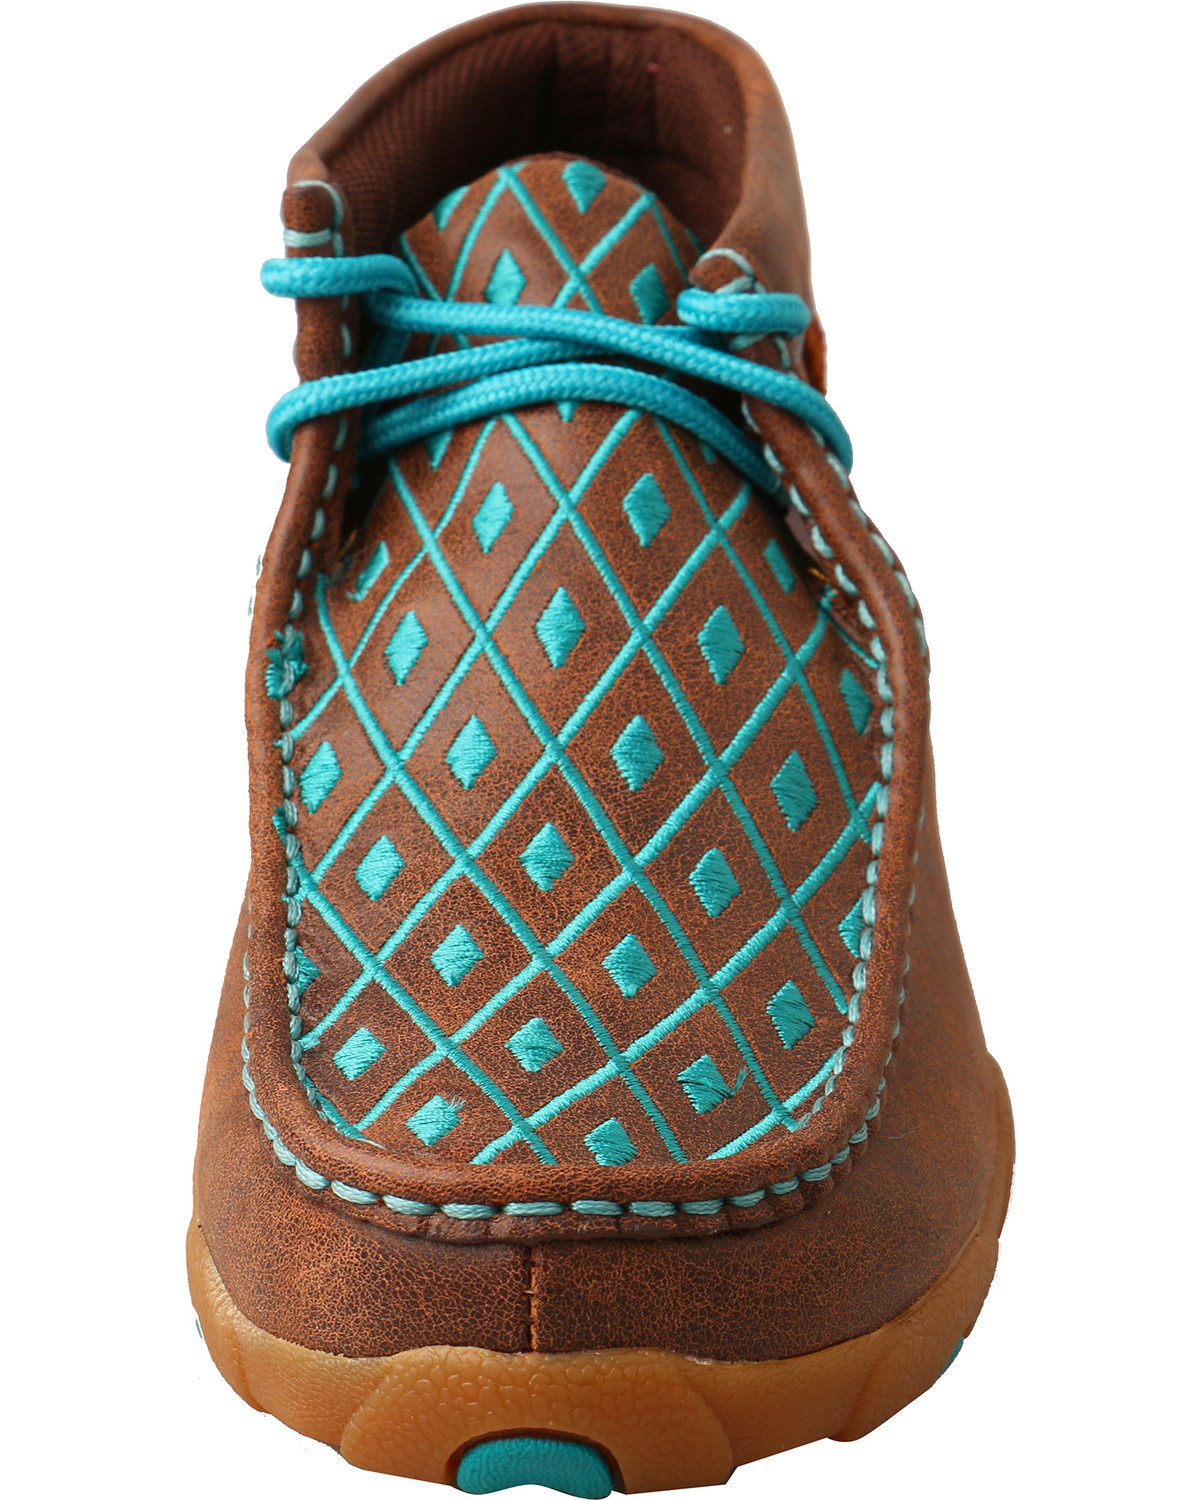 Turquoise Jeans For Men